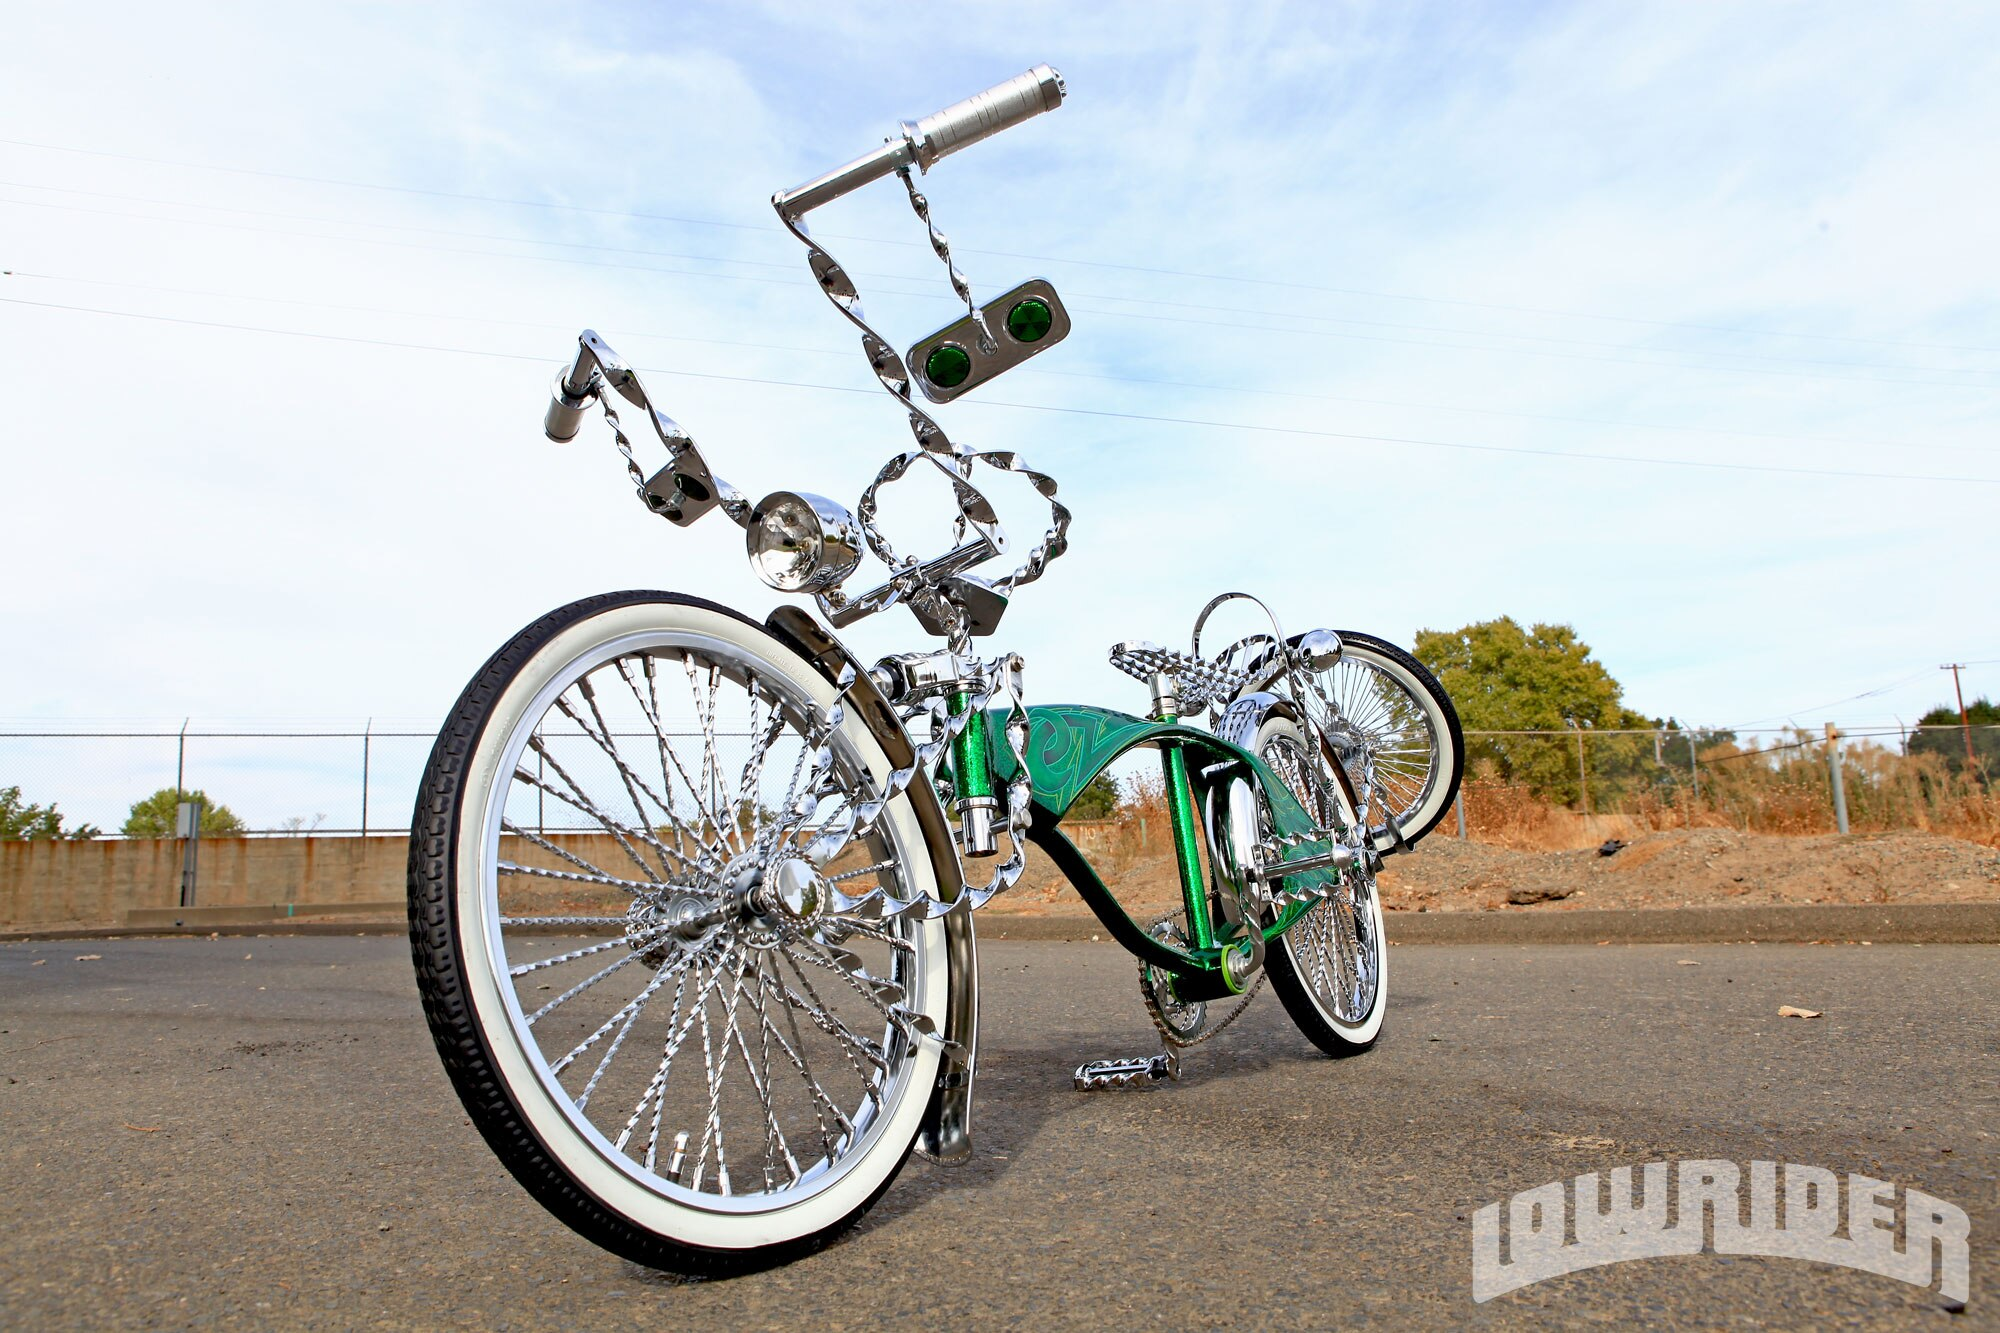 lrmp-1112-01-o-lowrider-bike-white-wall-tires2